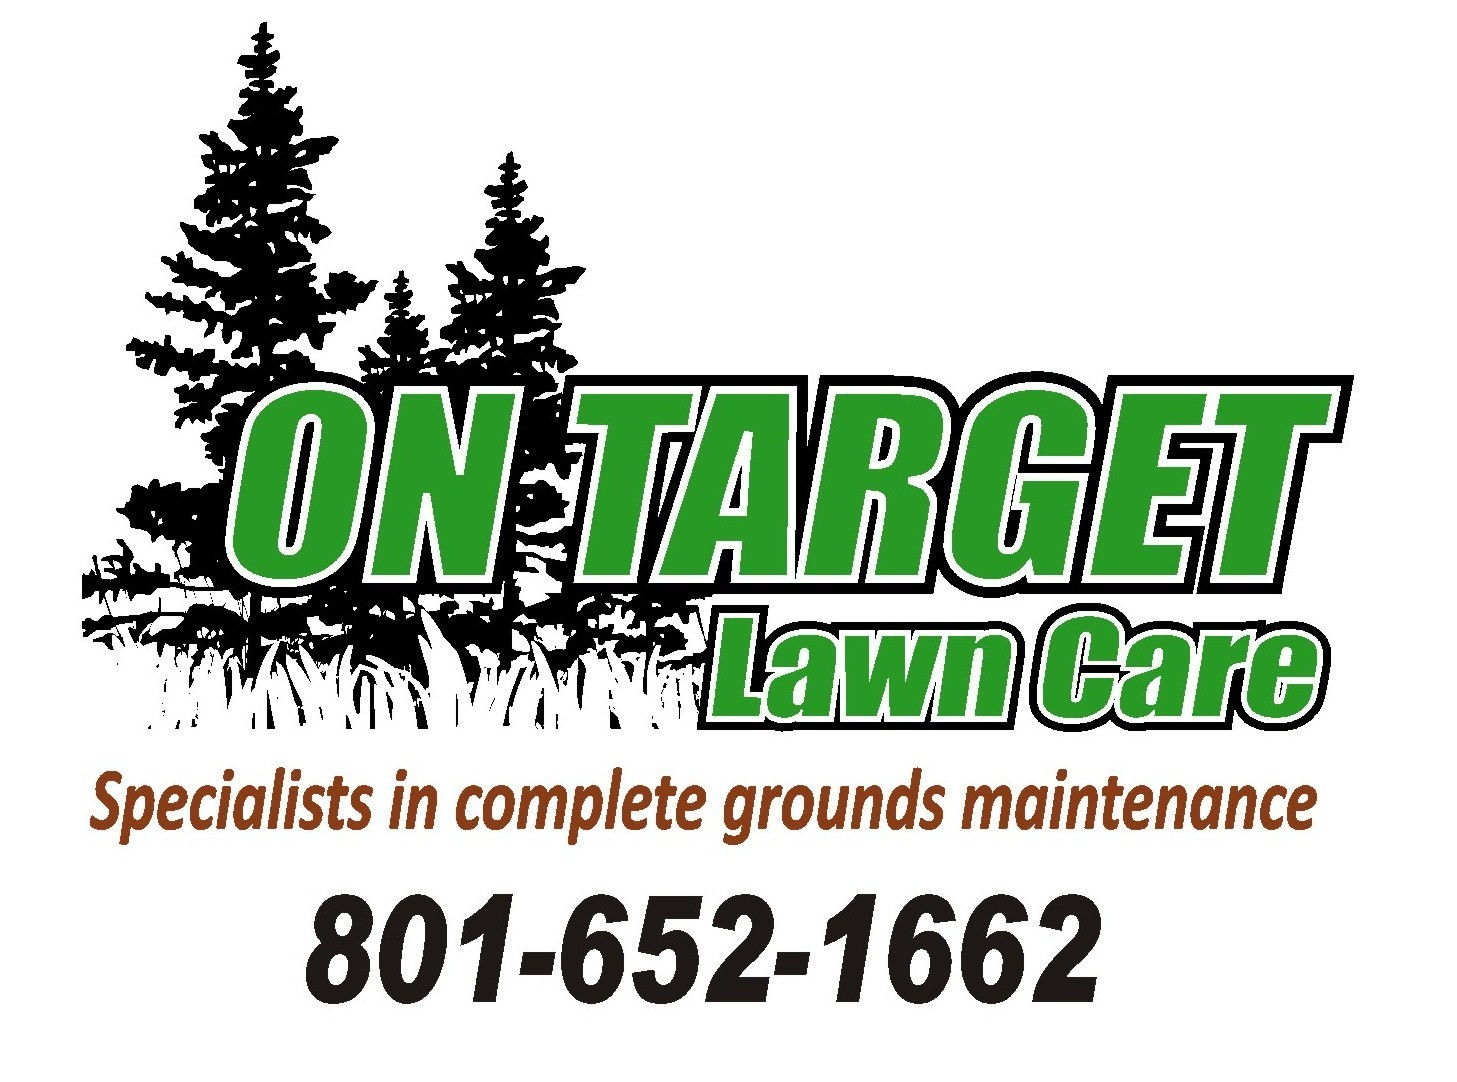 Customized lawn service logo design joy studio design for Garden maintenance logo